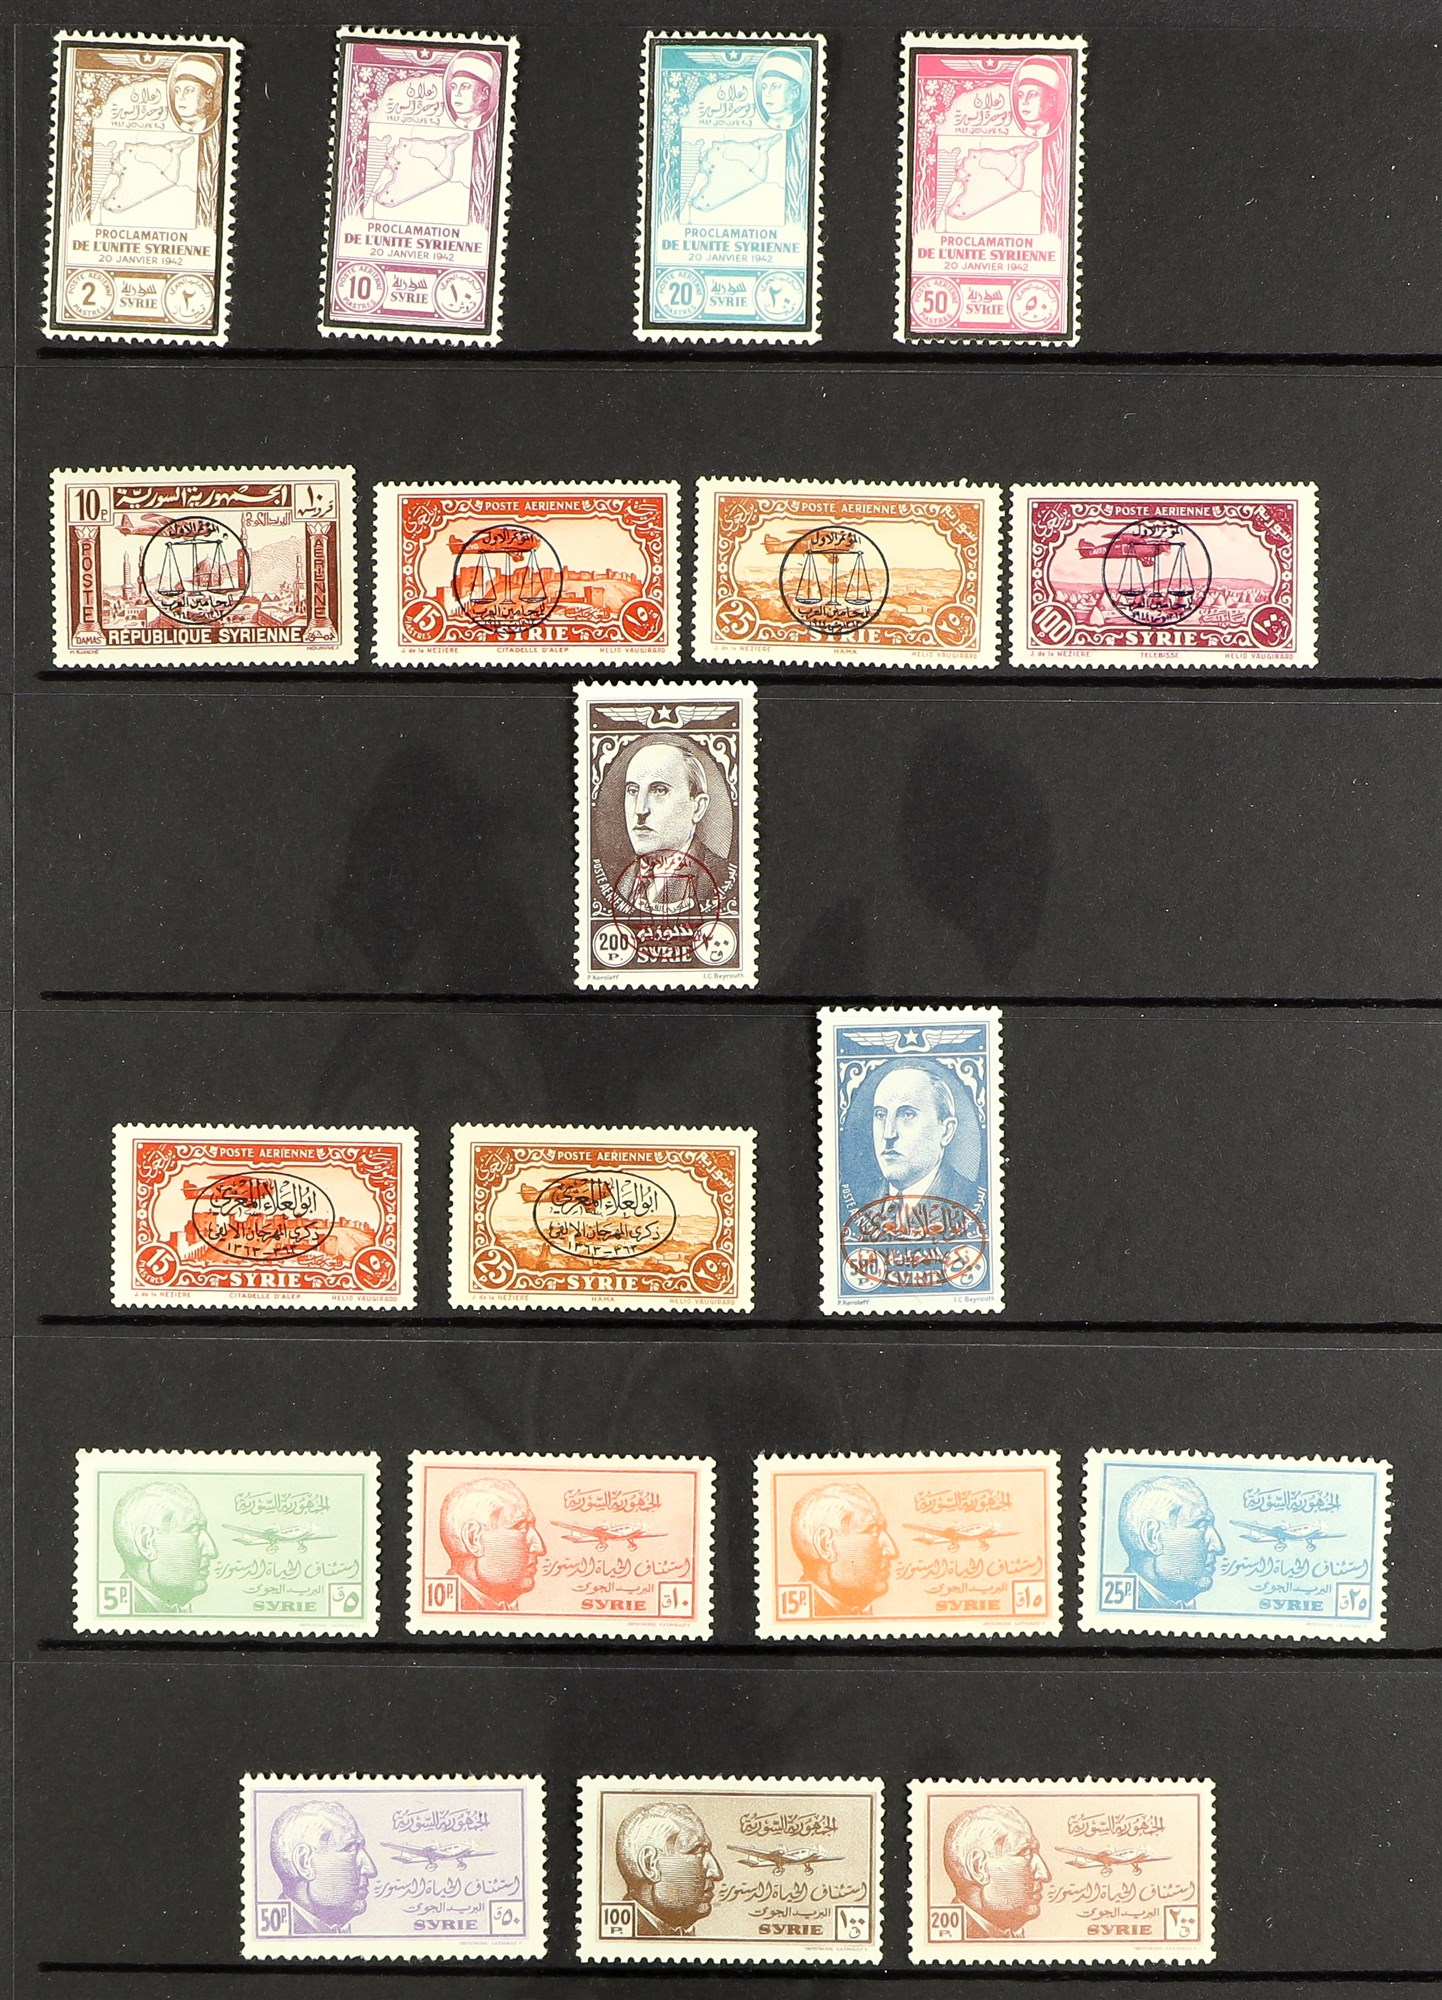 FRENCH COLONIES SYRIA 1922-1945 Air stamps, fine mint or never hinged mint collection incl. 1922, - Image 3 of 3